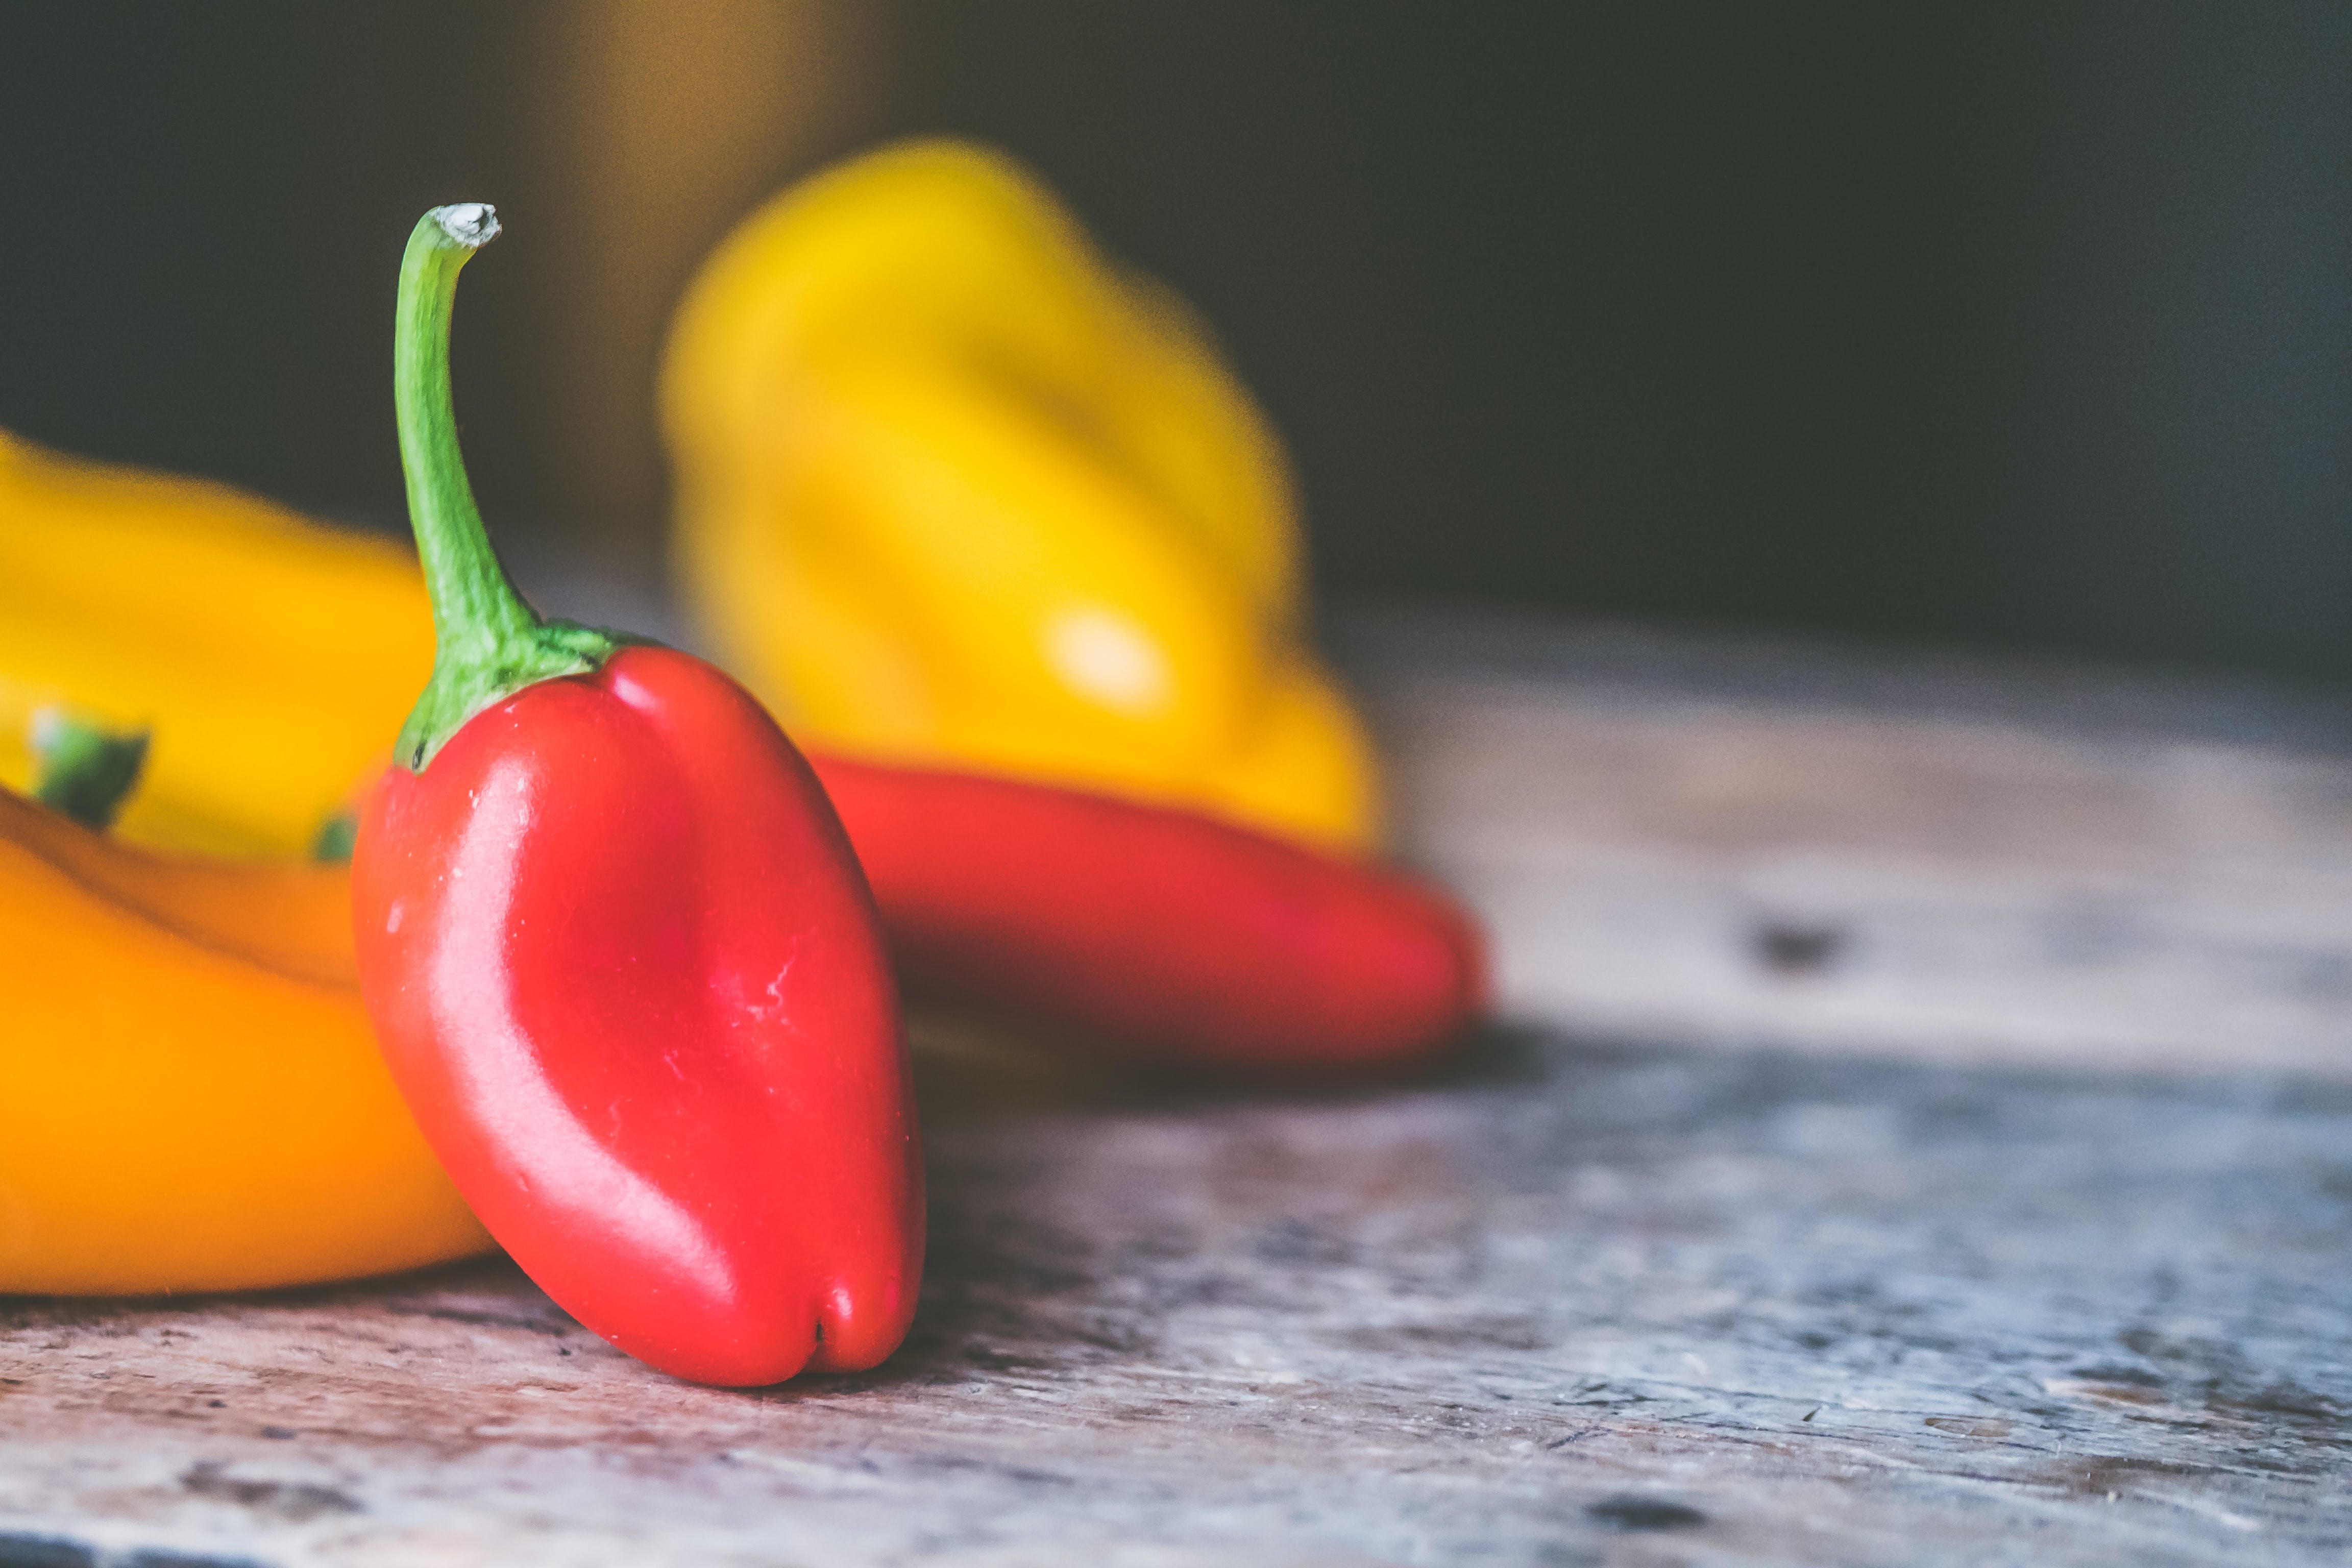 Red Chili Pepper on Gray Wooden Surface